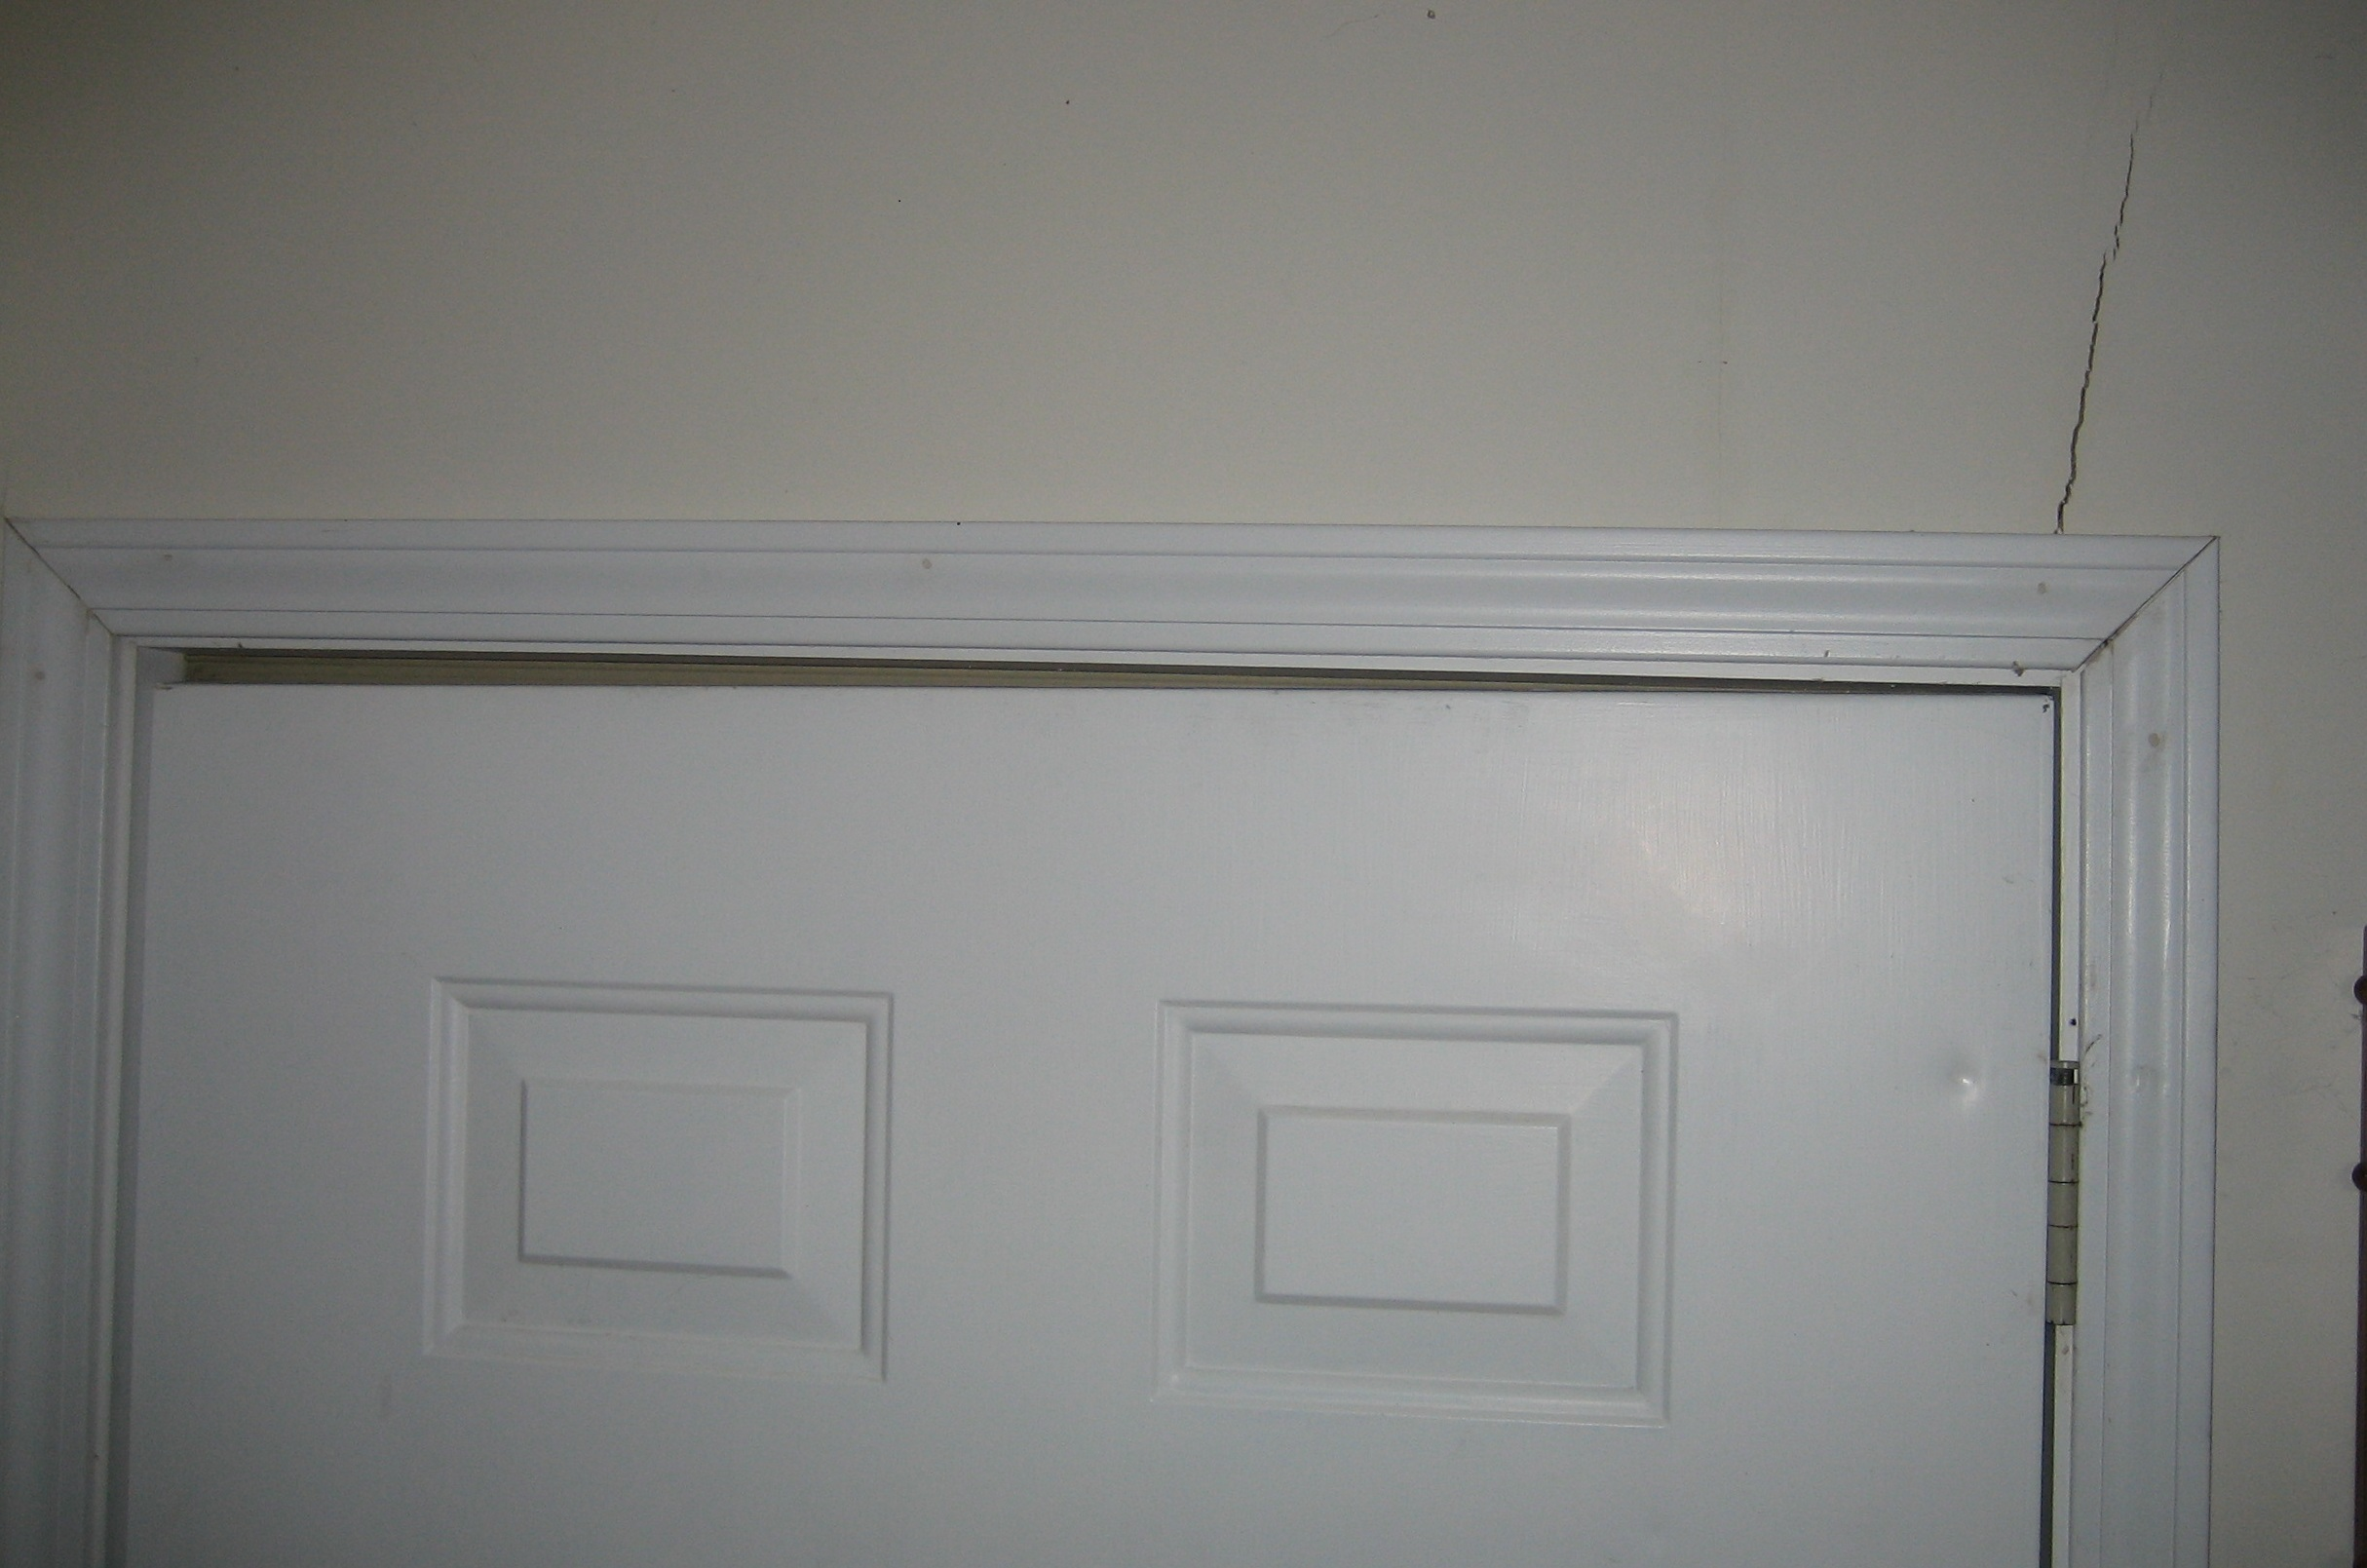 & Foundation Stress Cracks in Drywall Walls/Ceilings